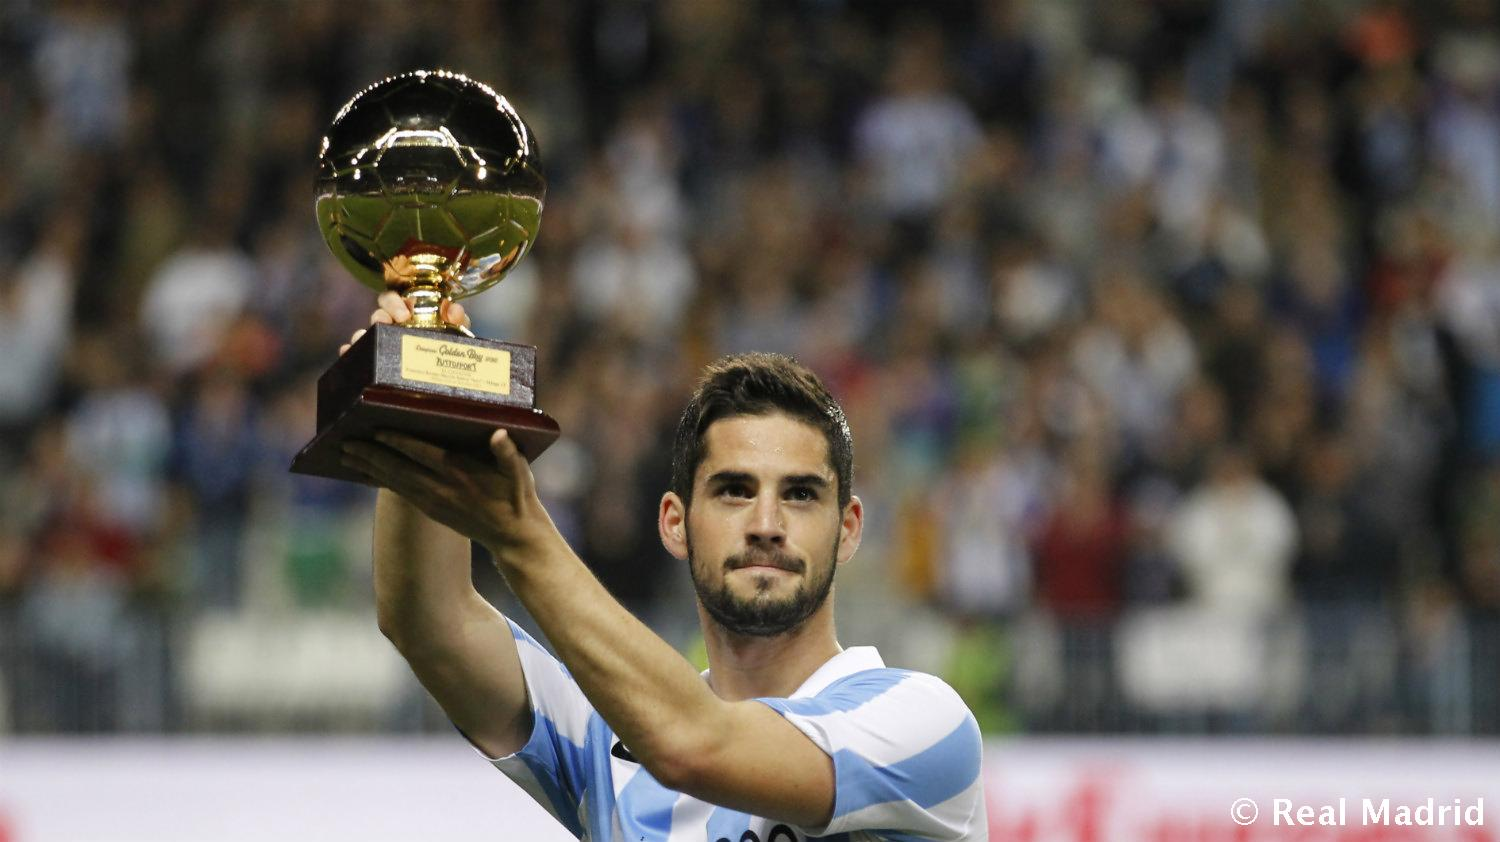 Real Madrid - Isco. Golden Boy 2012 - 27-01-2014